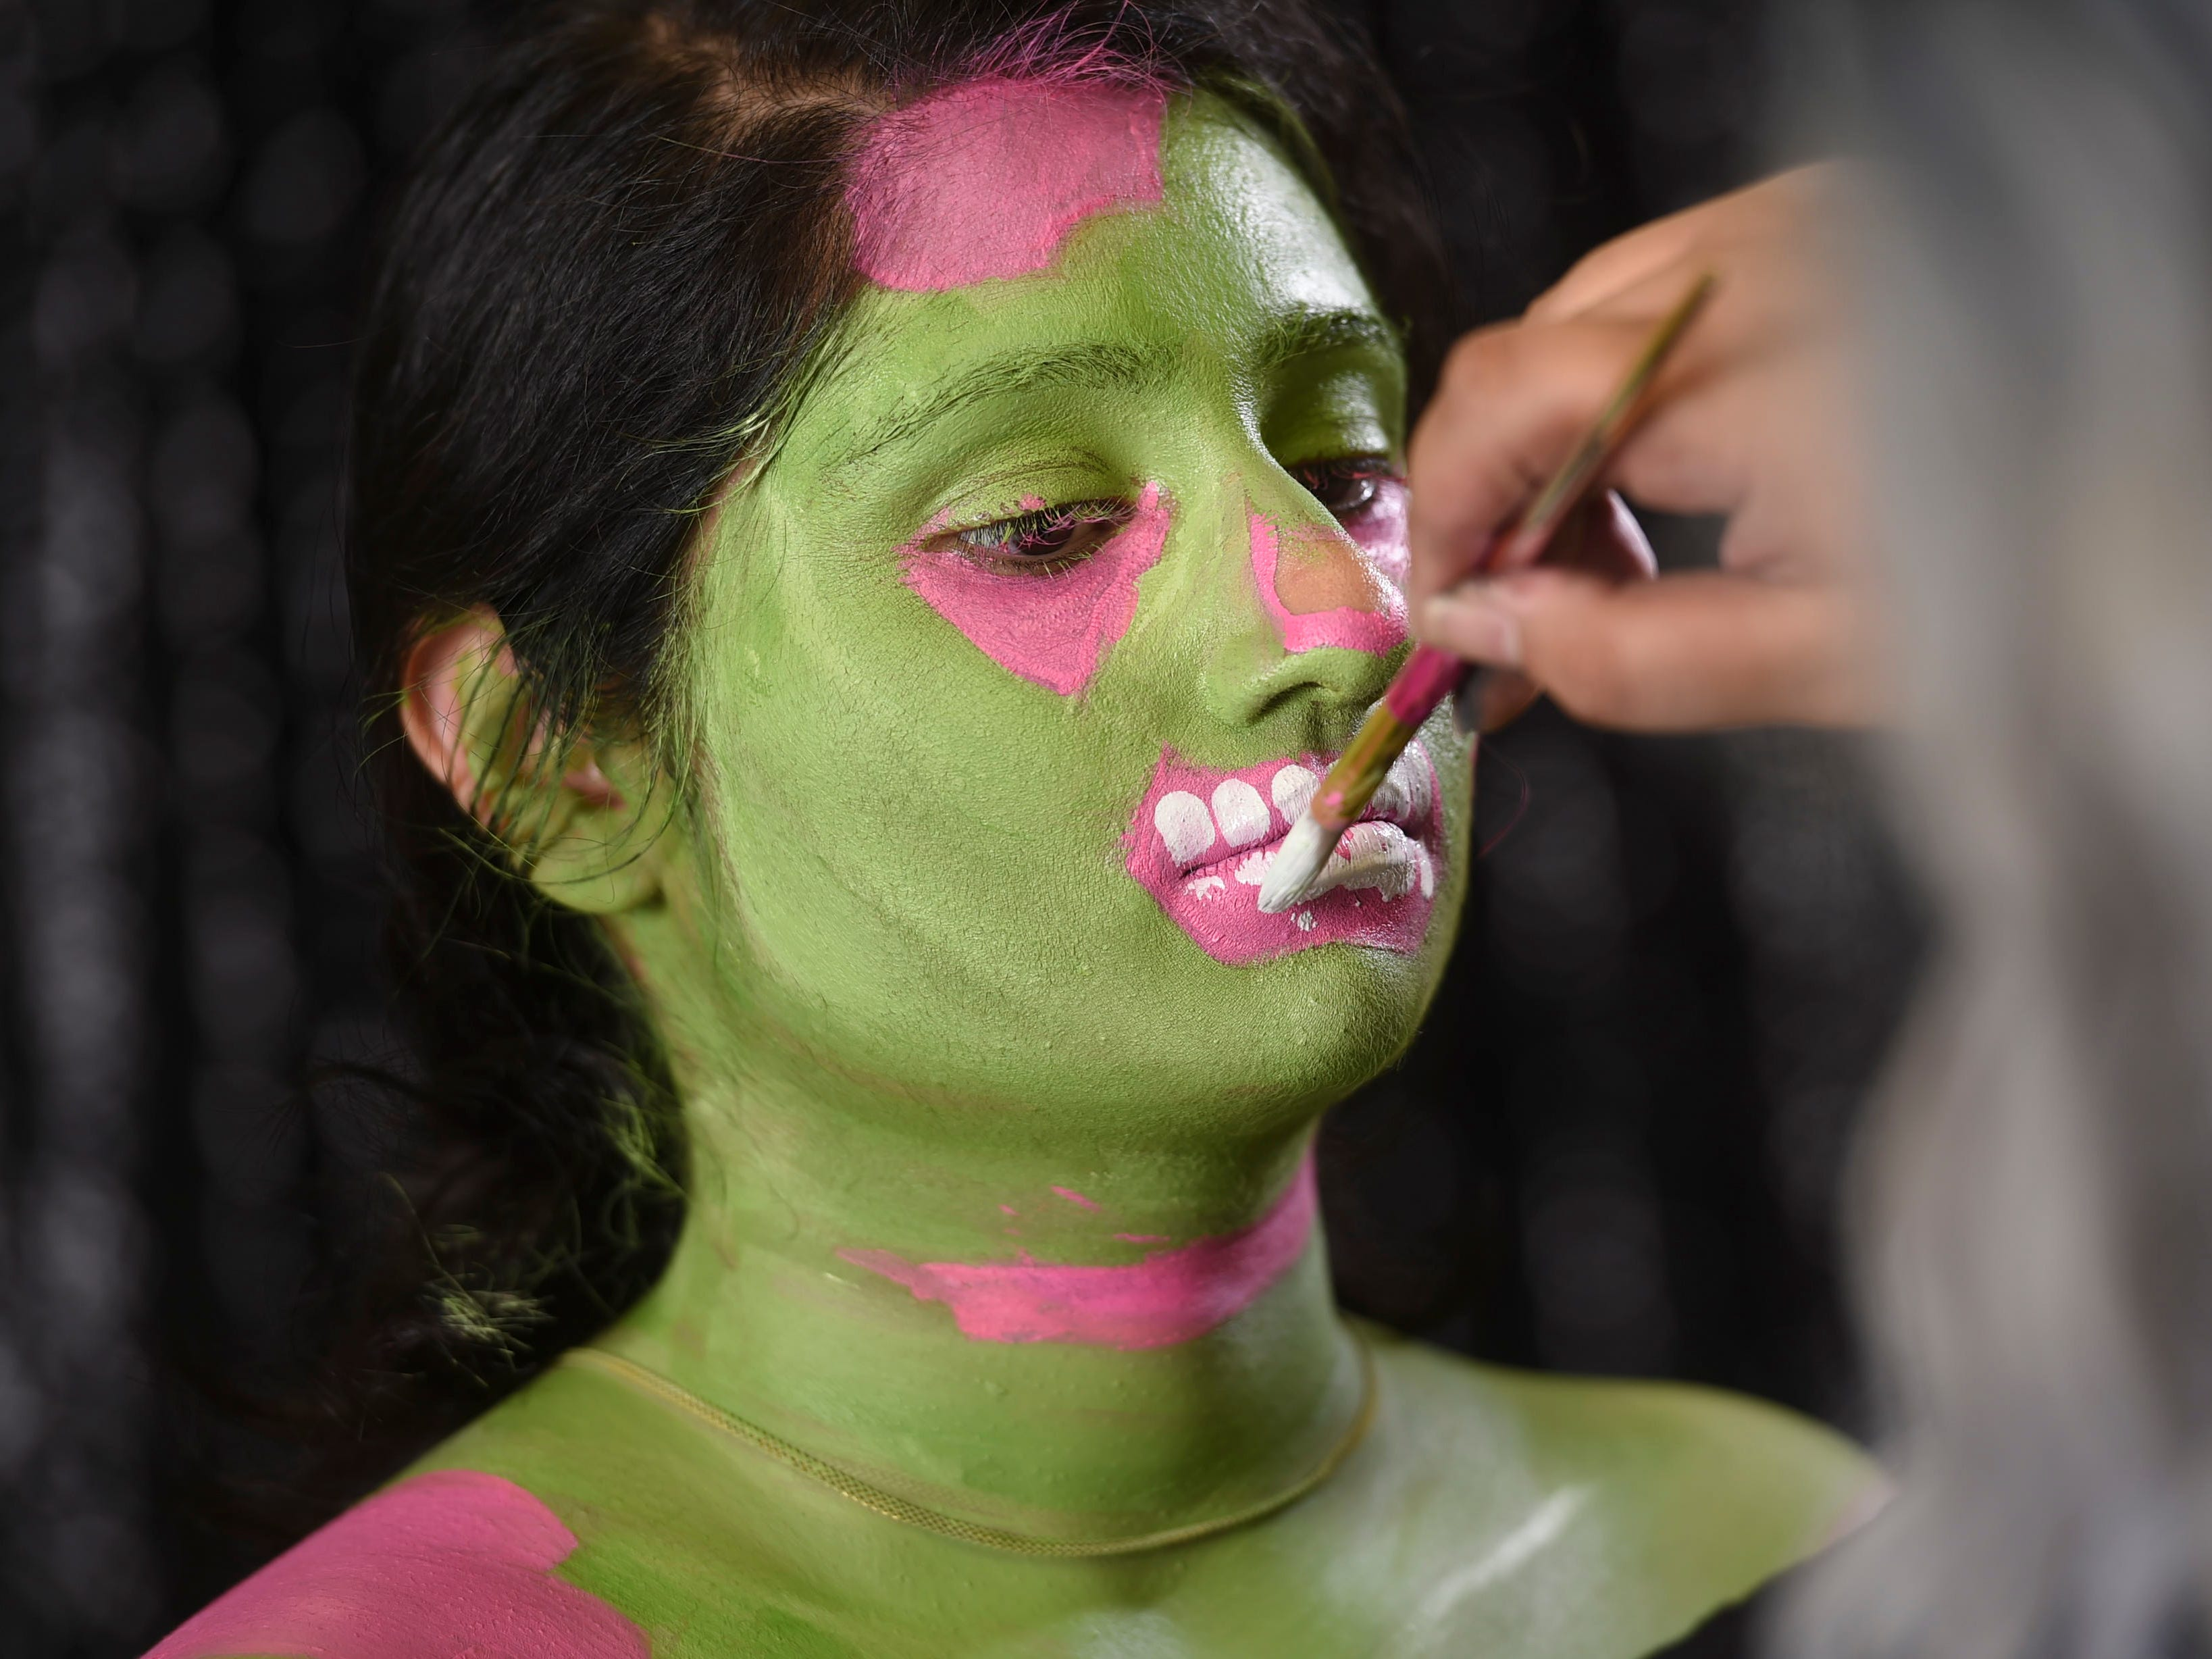 Paint in teeth with white water-based face paint.